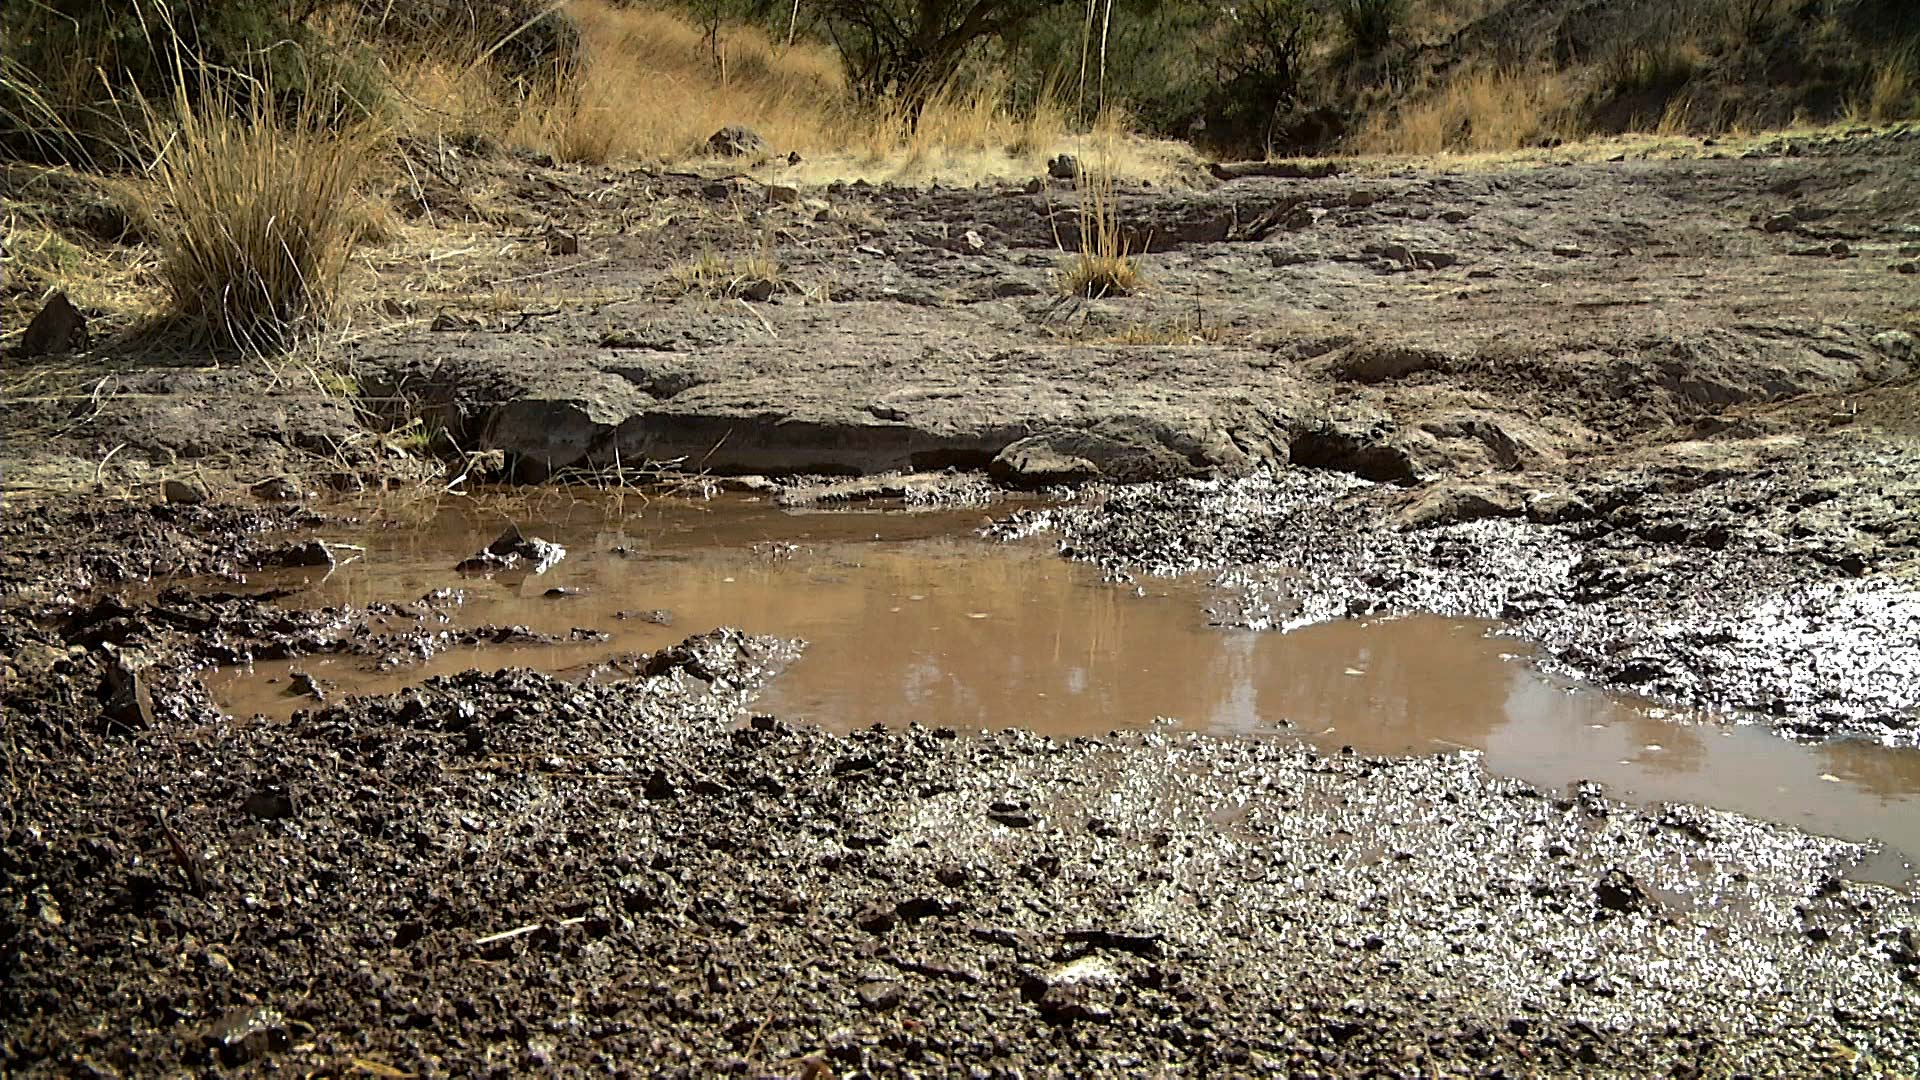 A puddle in a relatively dry creek bed in the Patagonia Mountains at a time when the region was experiencing extreme and exceptional drought. March 2021.